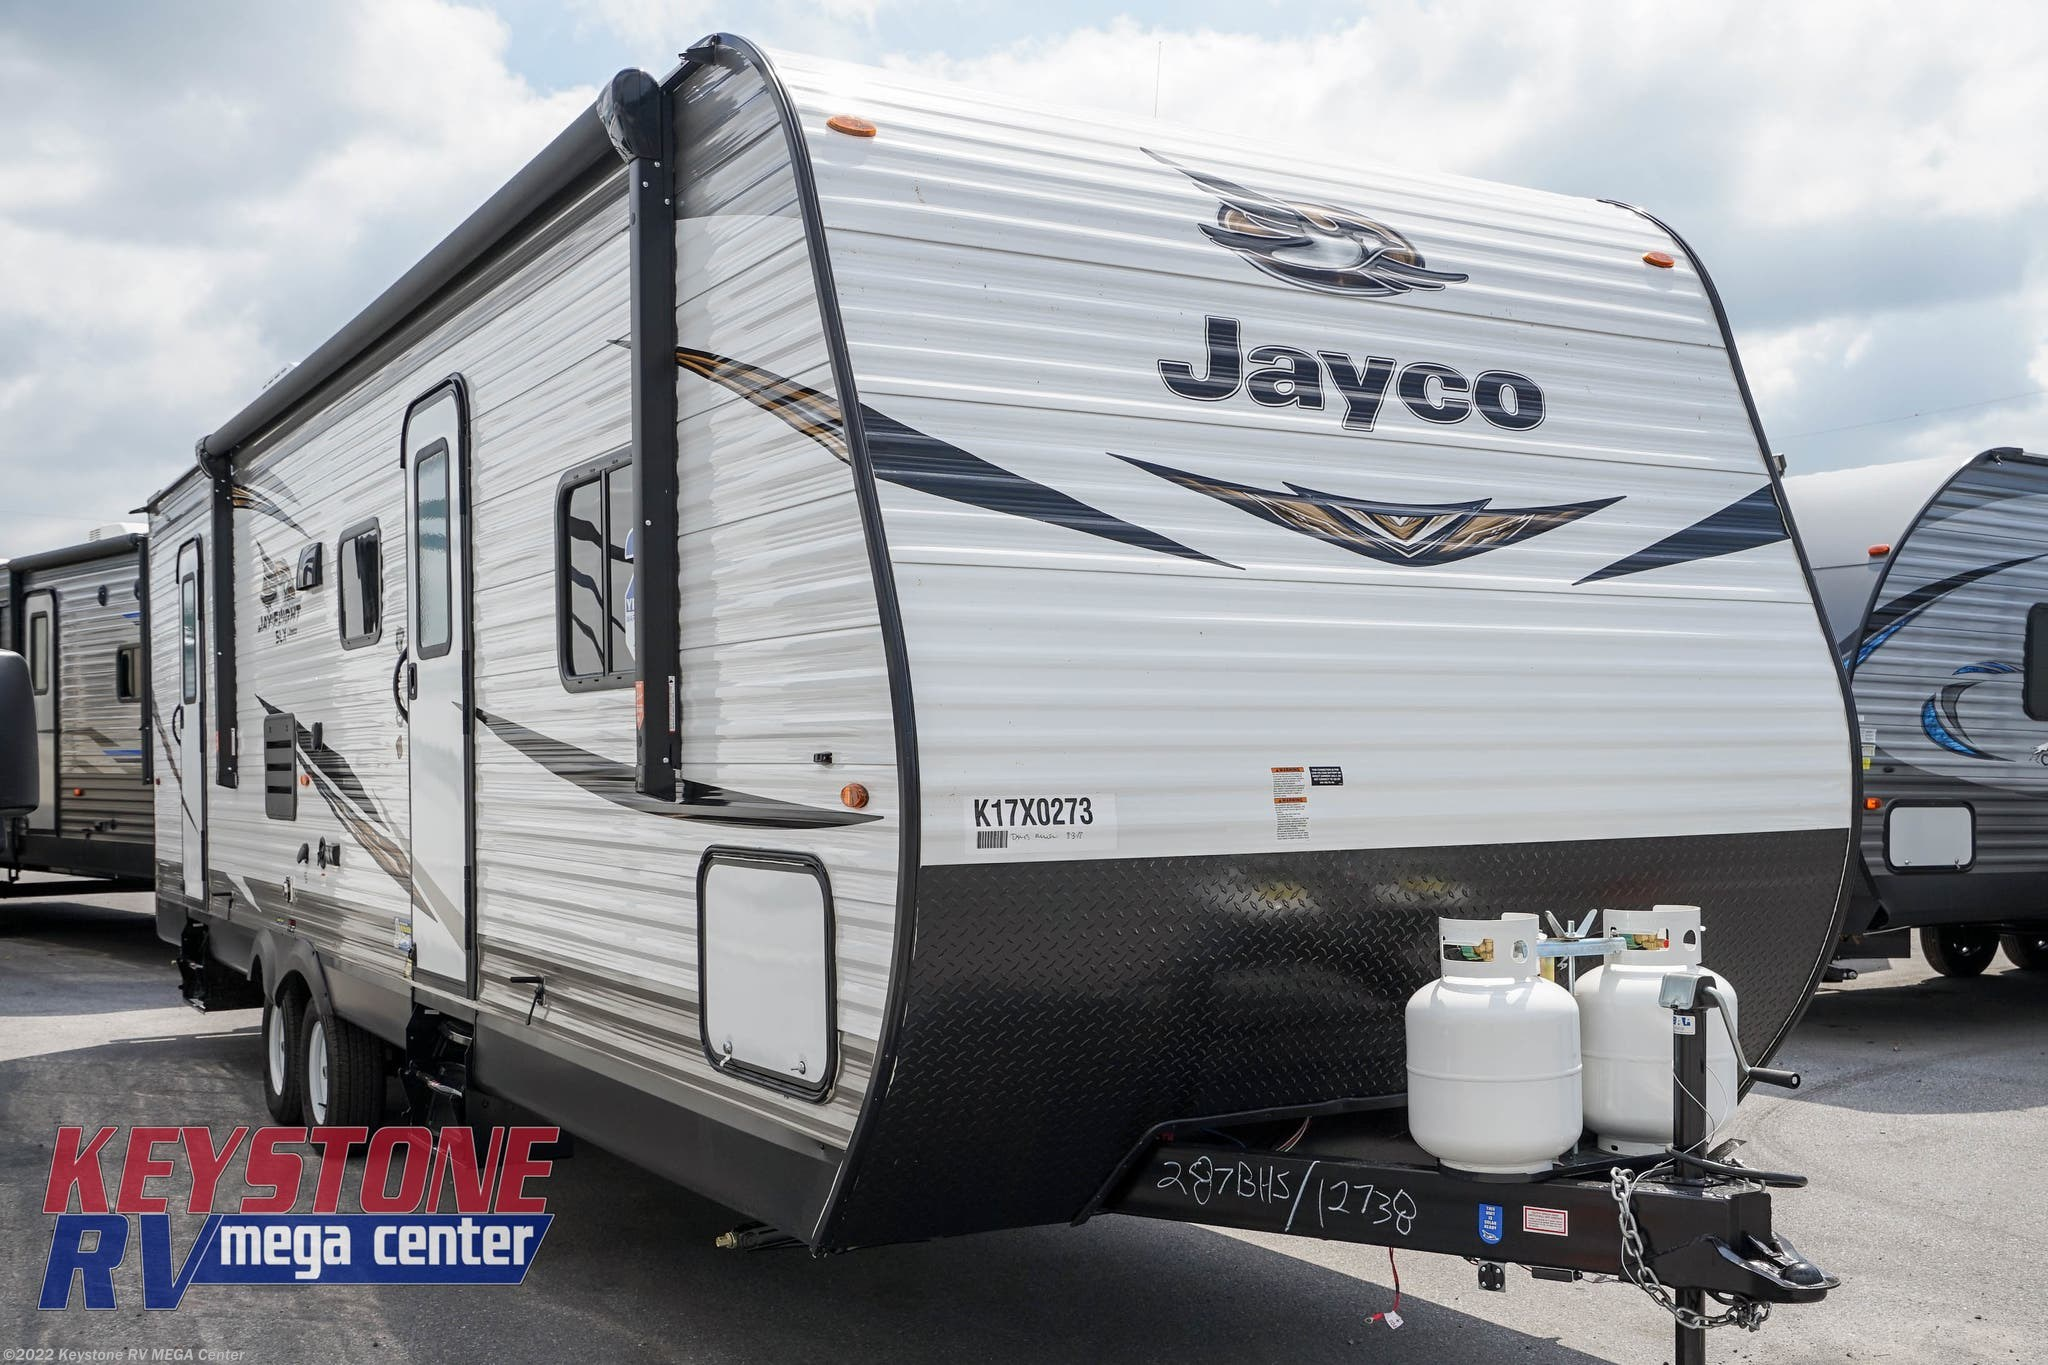 2019 Jayco Rv Jay Flight Slx 287bhs For Sale In Greencastle Pa Tv Wiring Diagram New Travel Trailer Pennsylvania 17225 1919500 Make Offer Previous